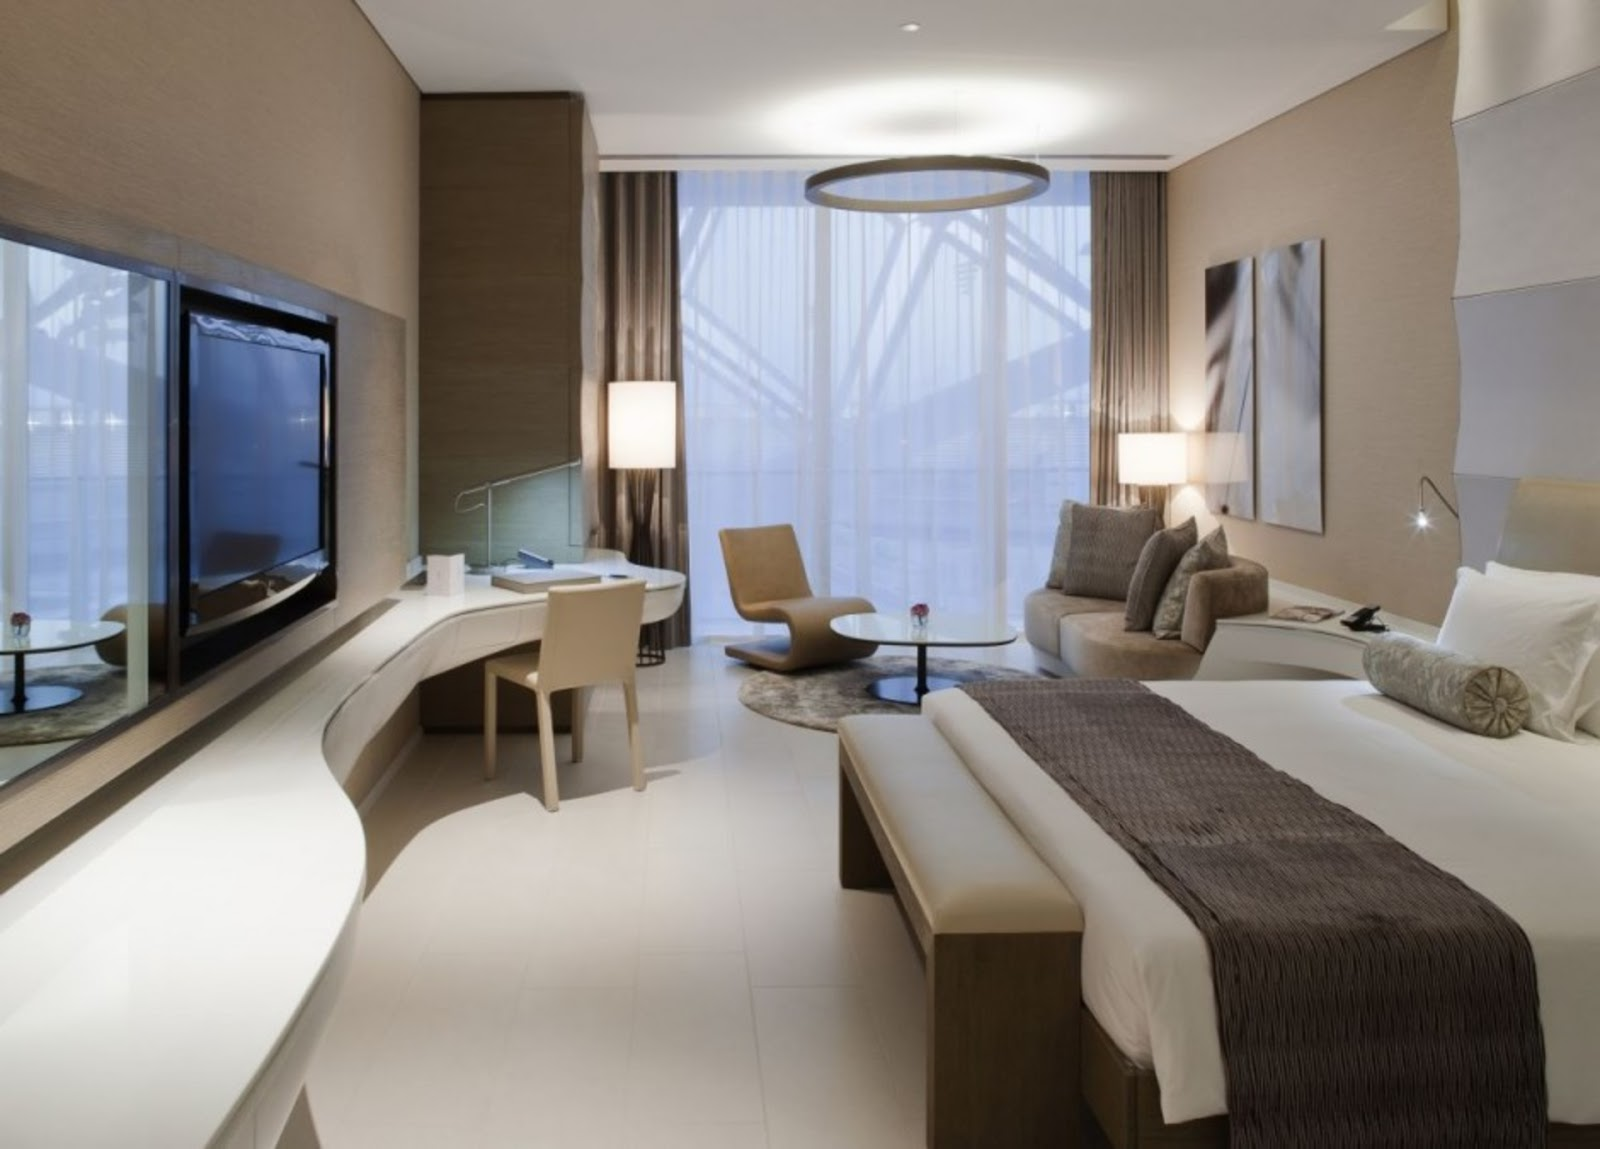 information about modern interior designs hotels, read here